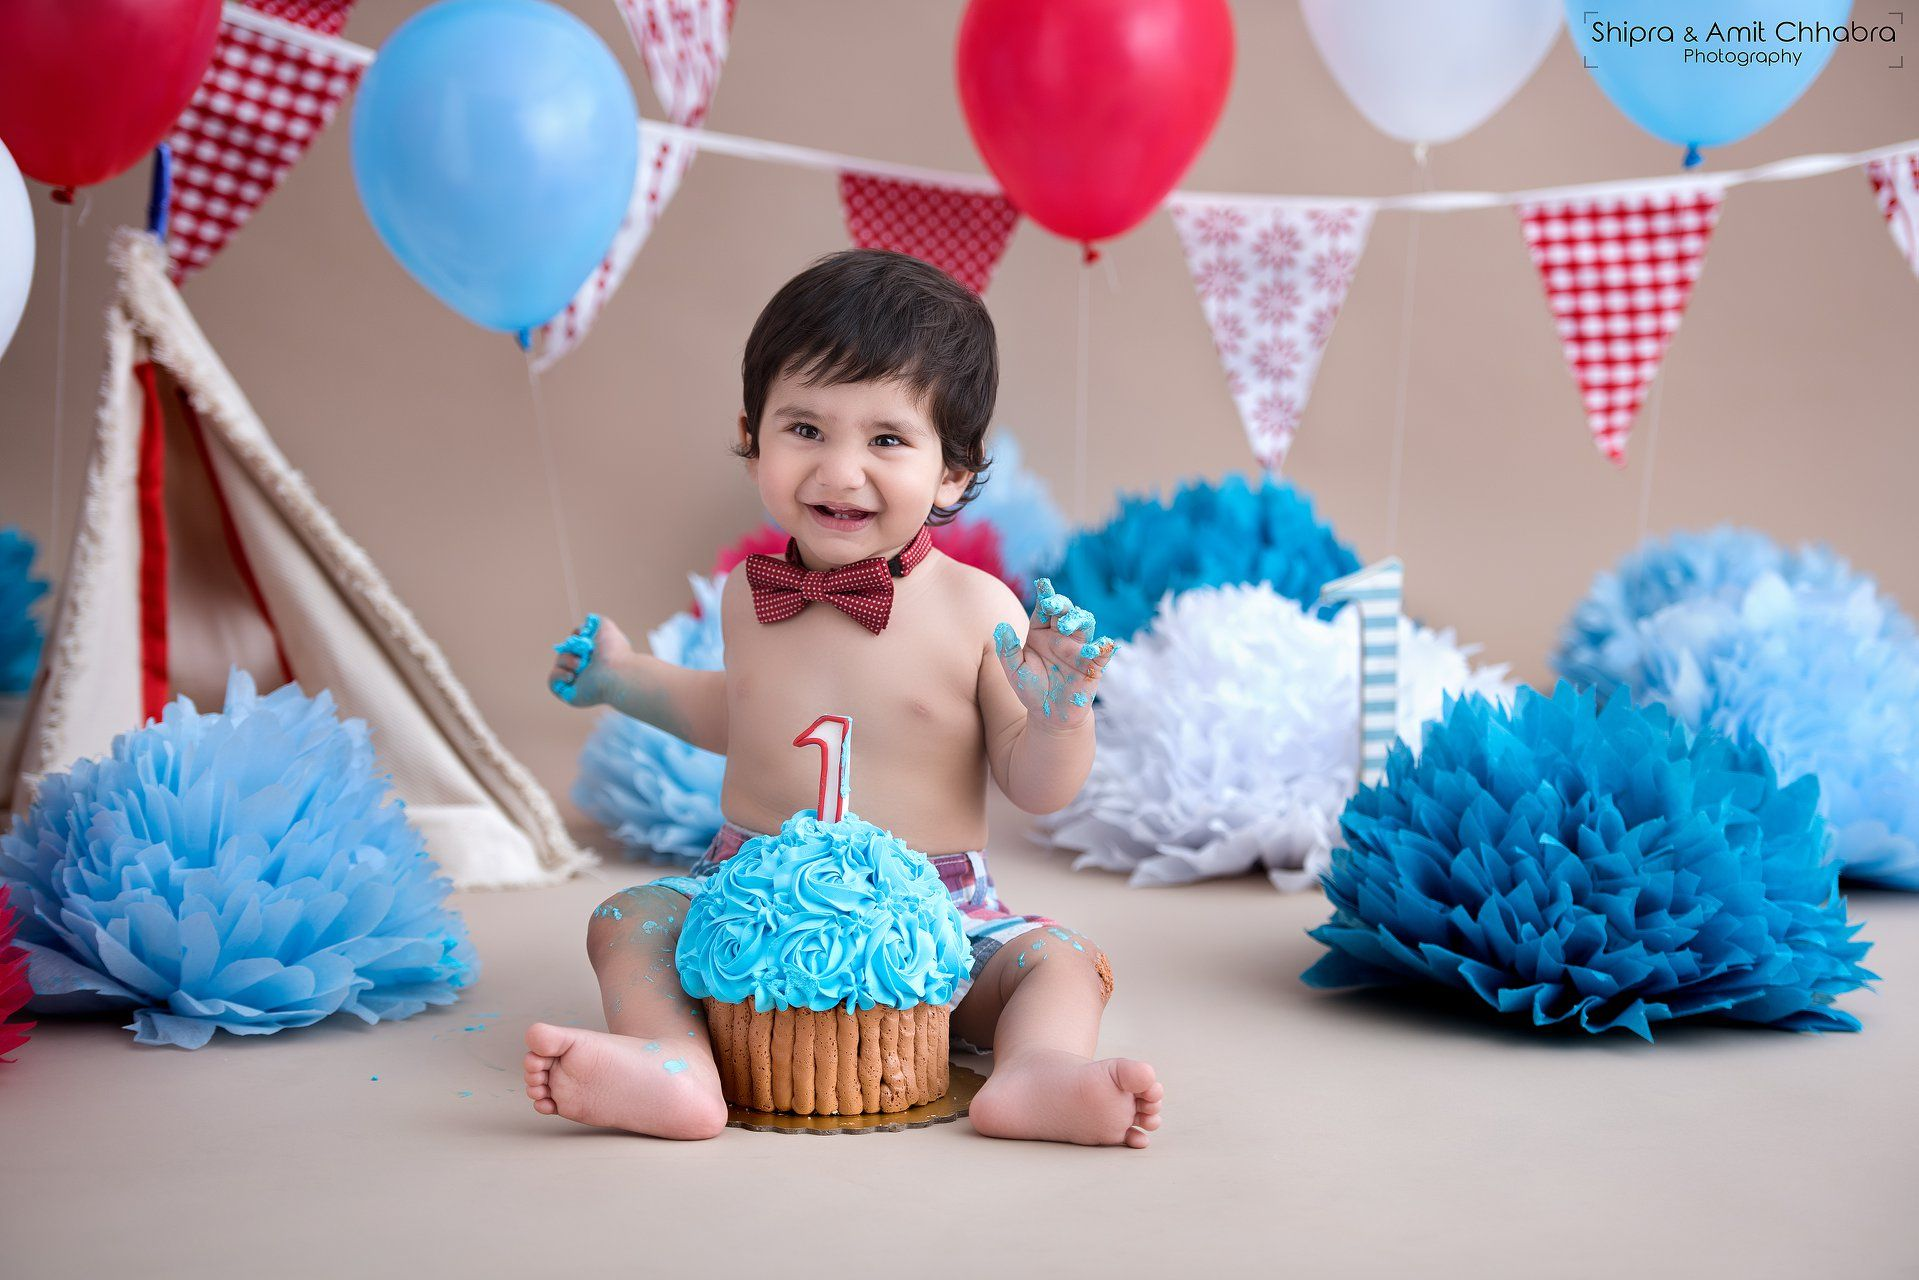 Cake Smash Photography Shipra Amit Chhabra With Images